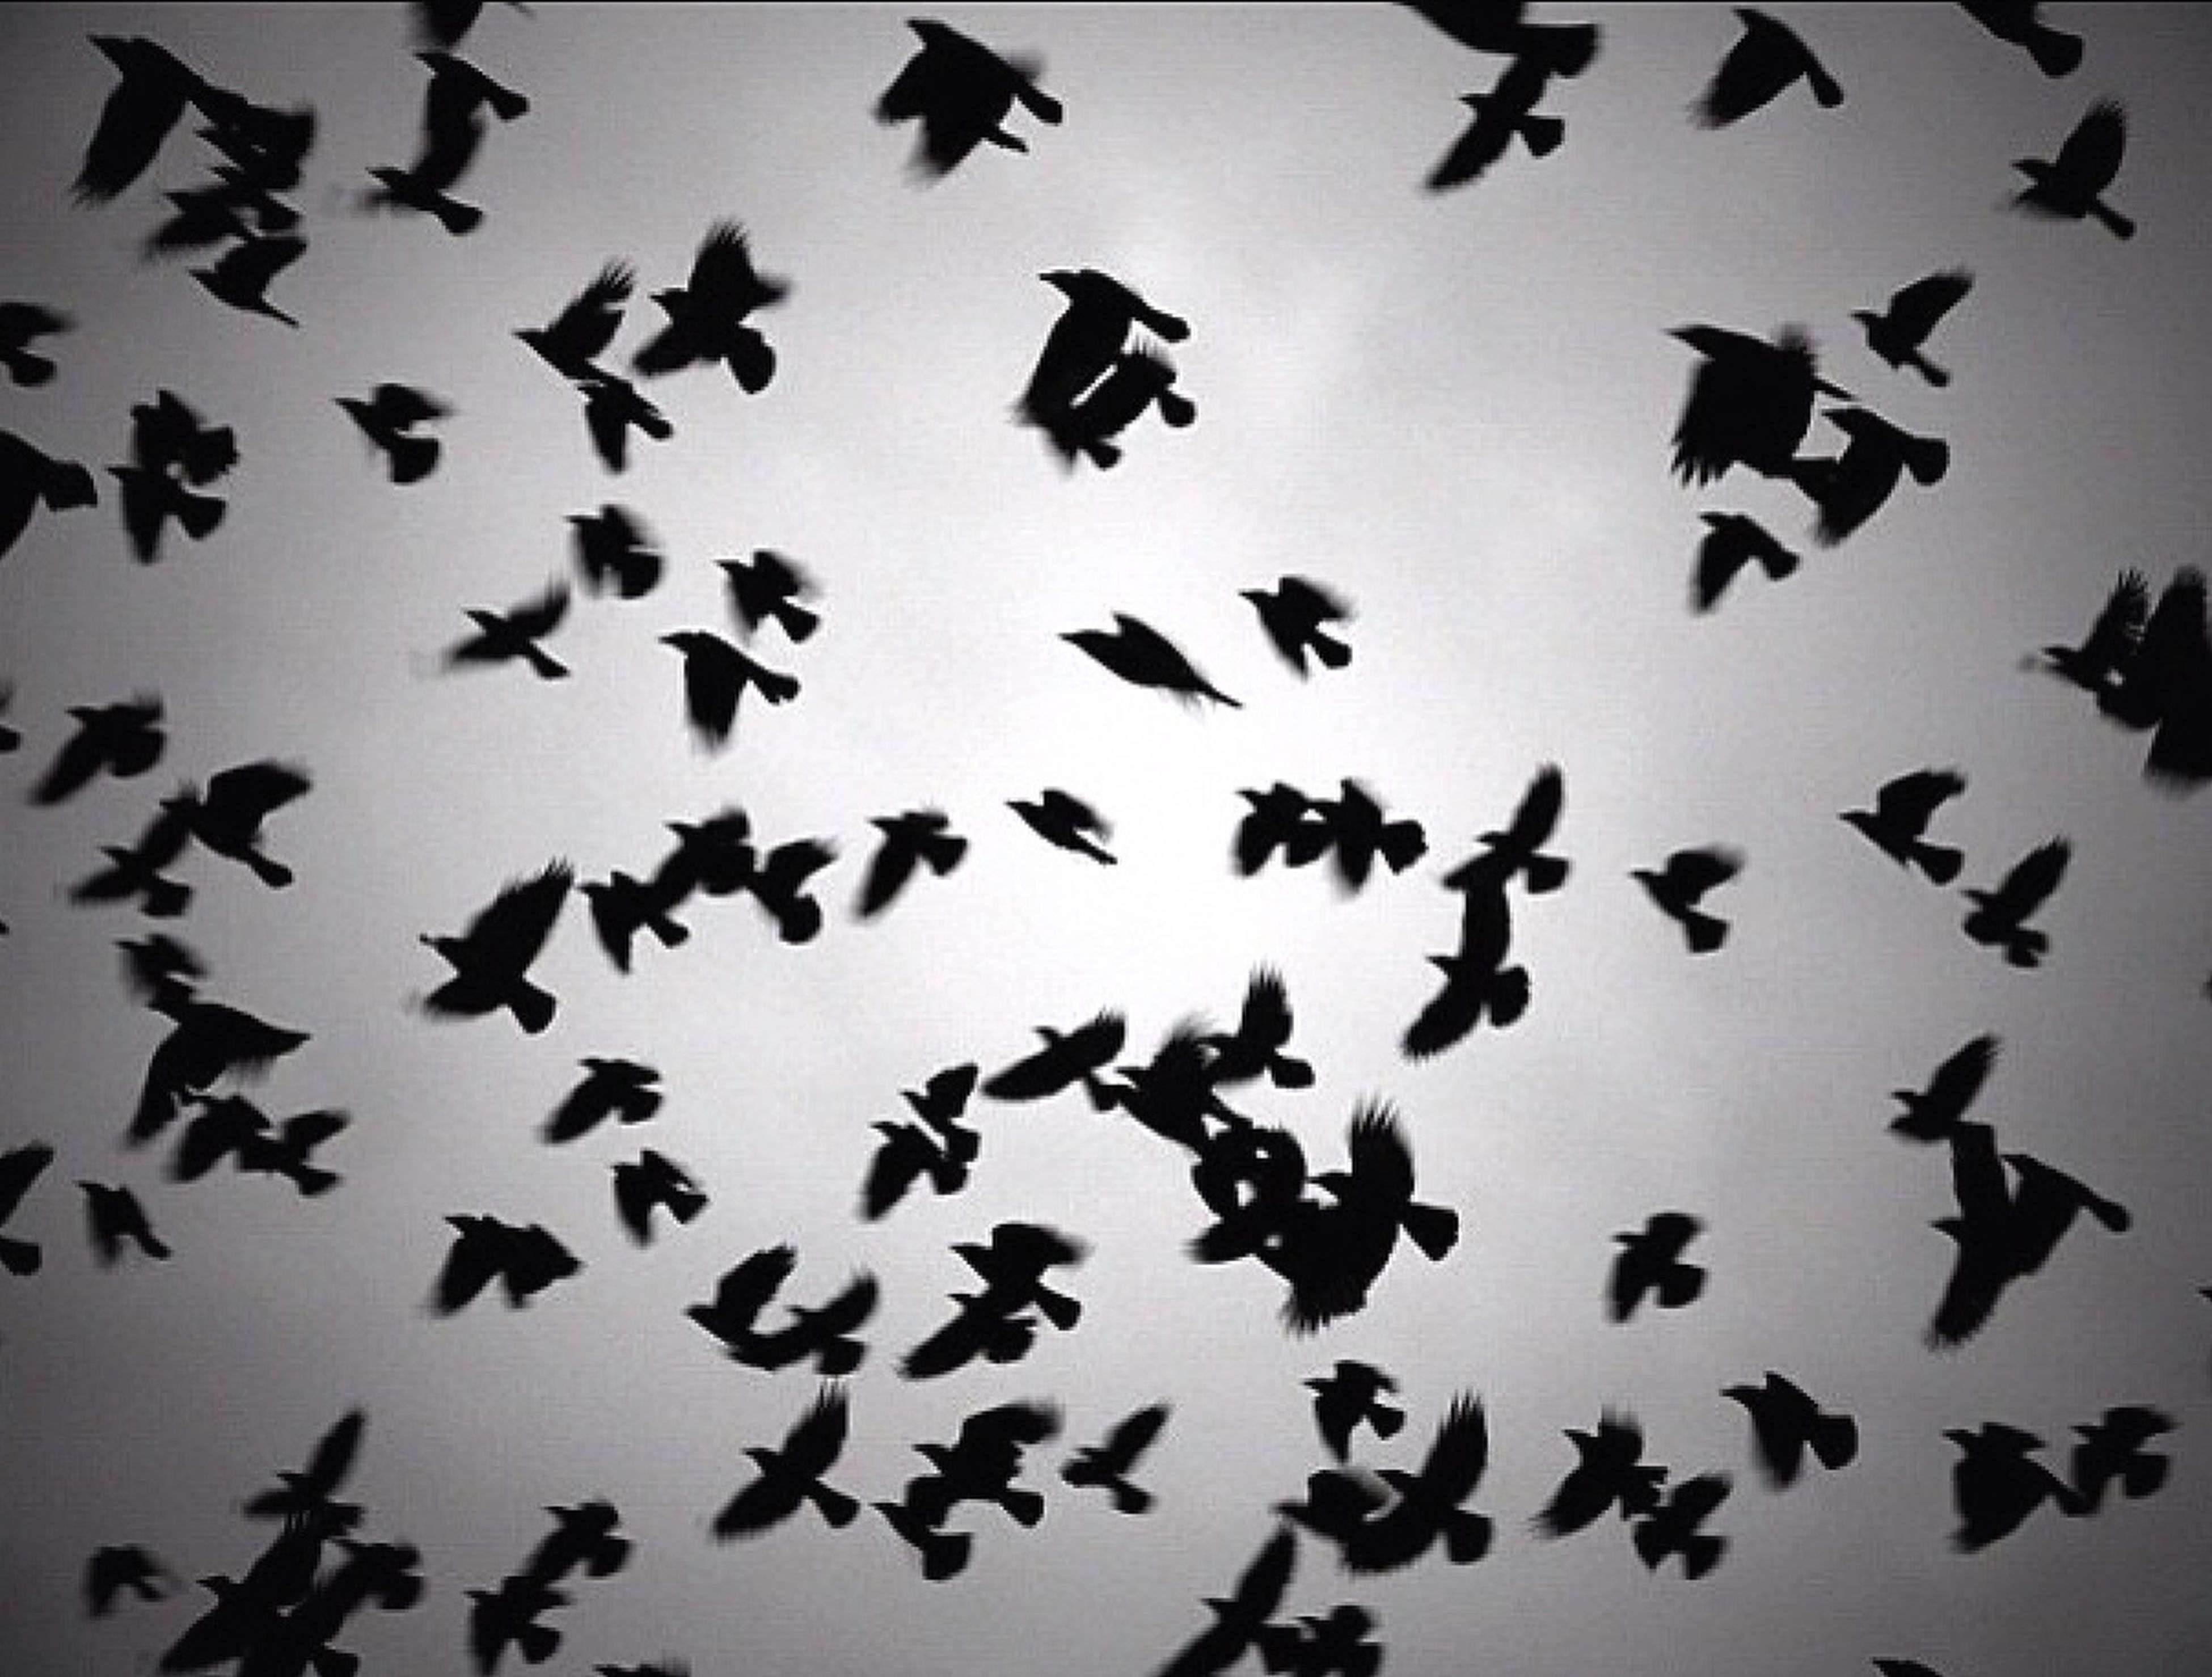 bird, low angle view, animals in the wild, animal themes, flying, flock of birds, wildlife, silhouette, backgrounds, full frame, sky, no people, outdoors, day, nature, spread wings, abundance, clear sky